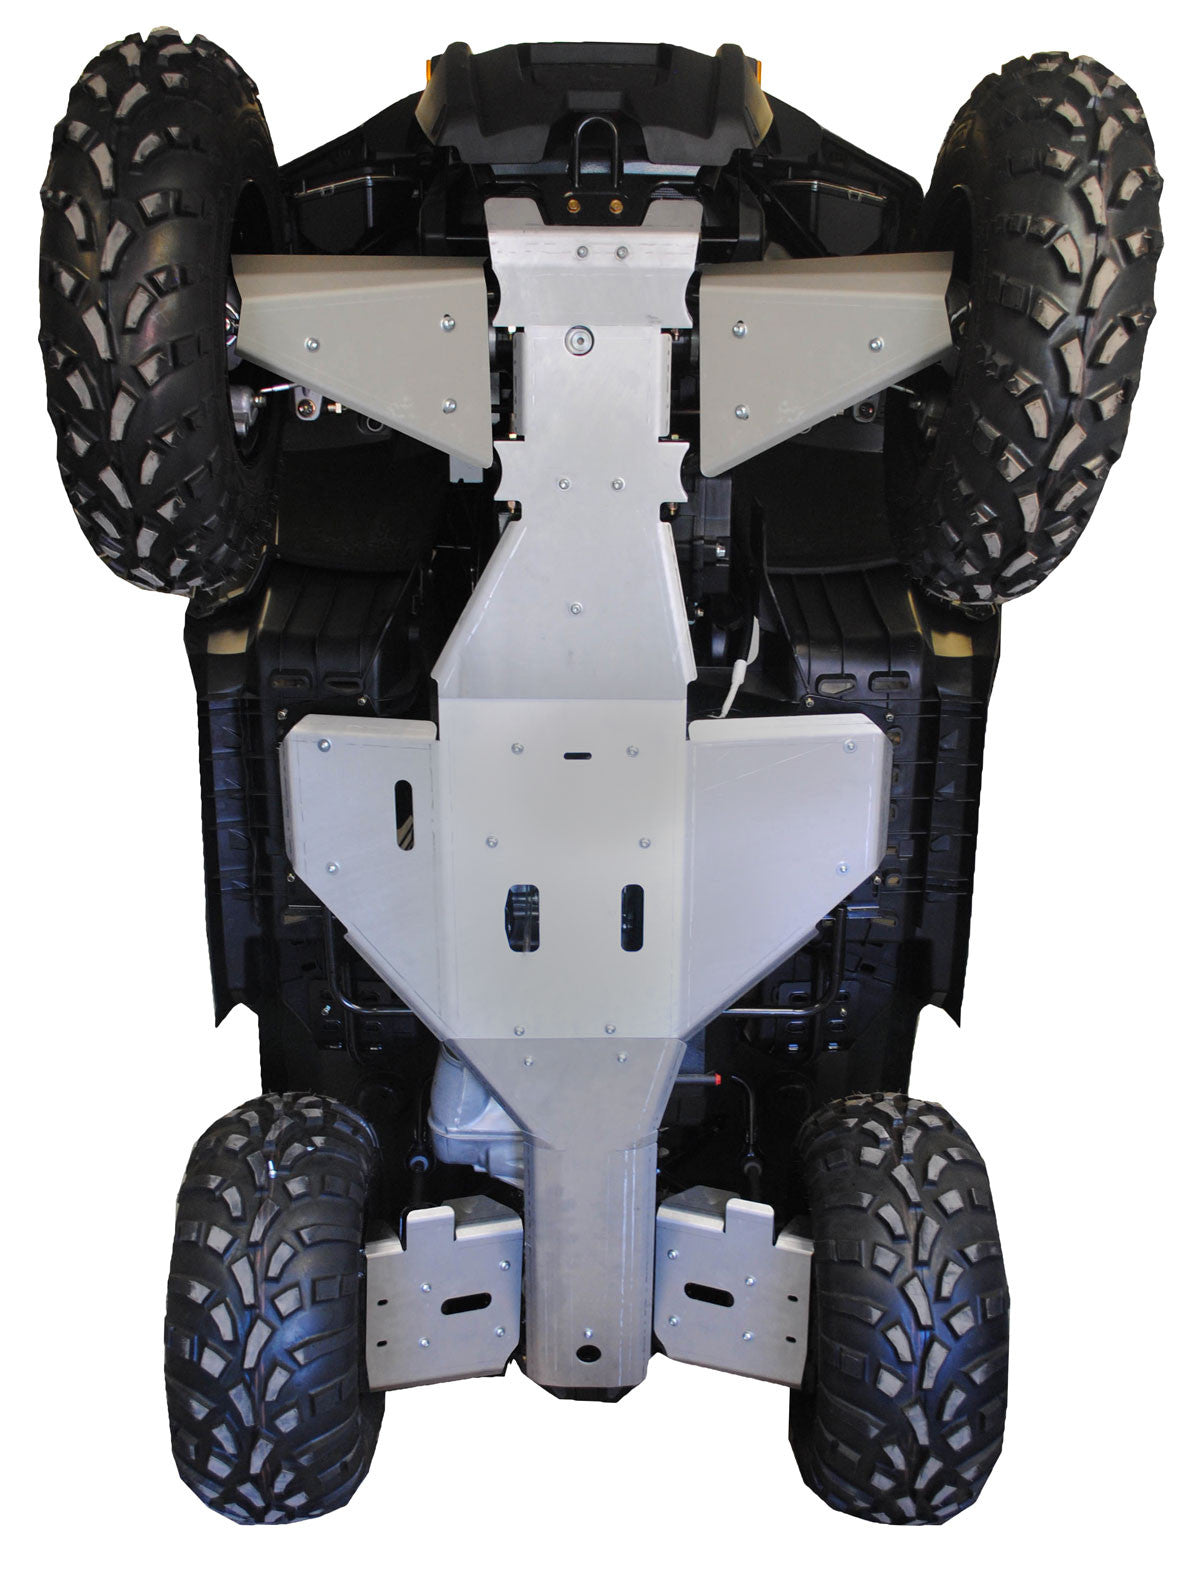 7-Piece Complete Aluminum Skid Plate Set, Polaris Sportsman 500/800 Touring